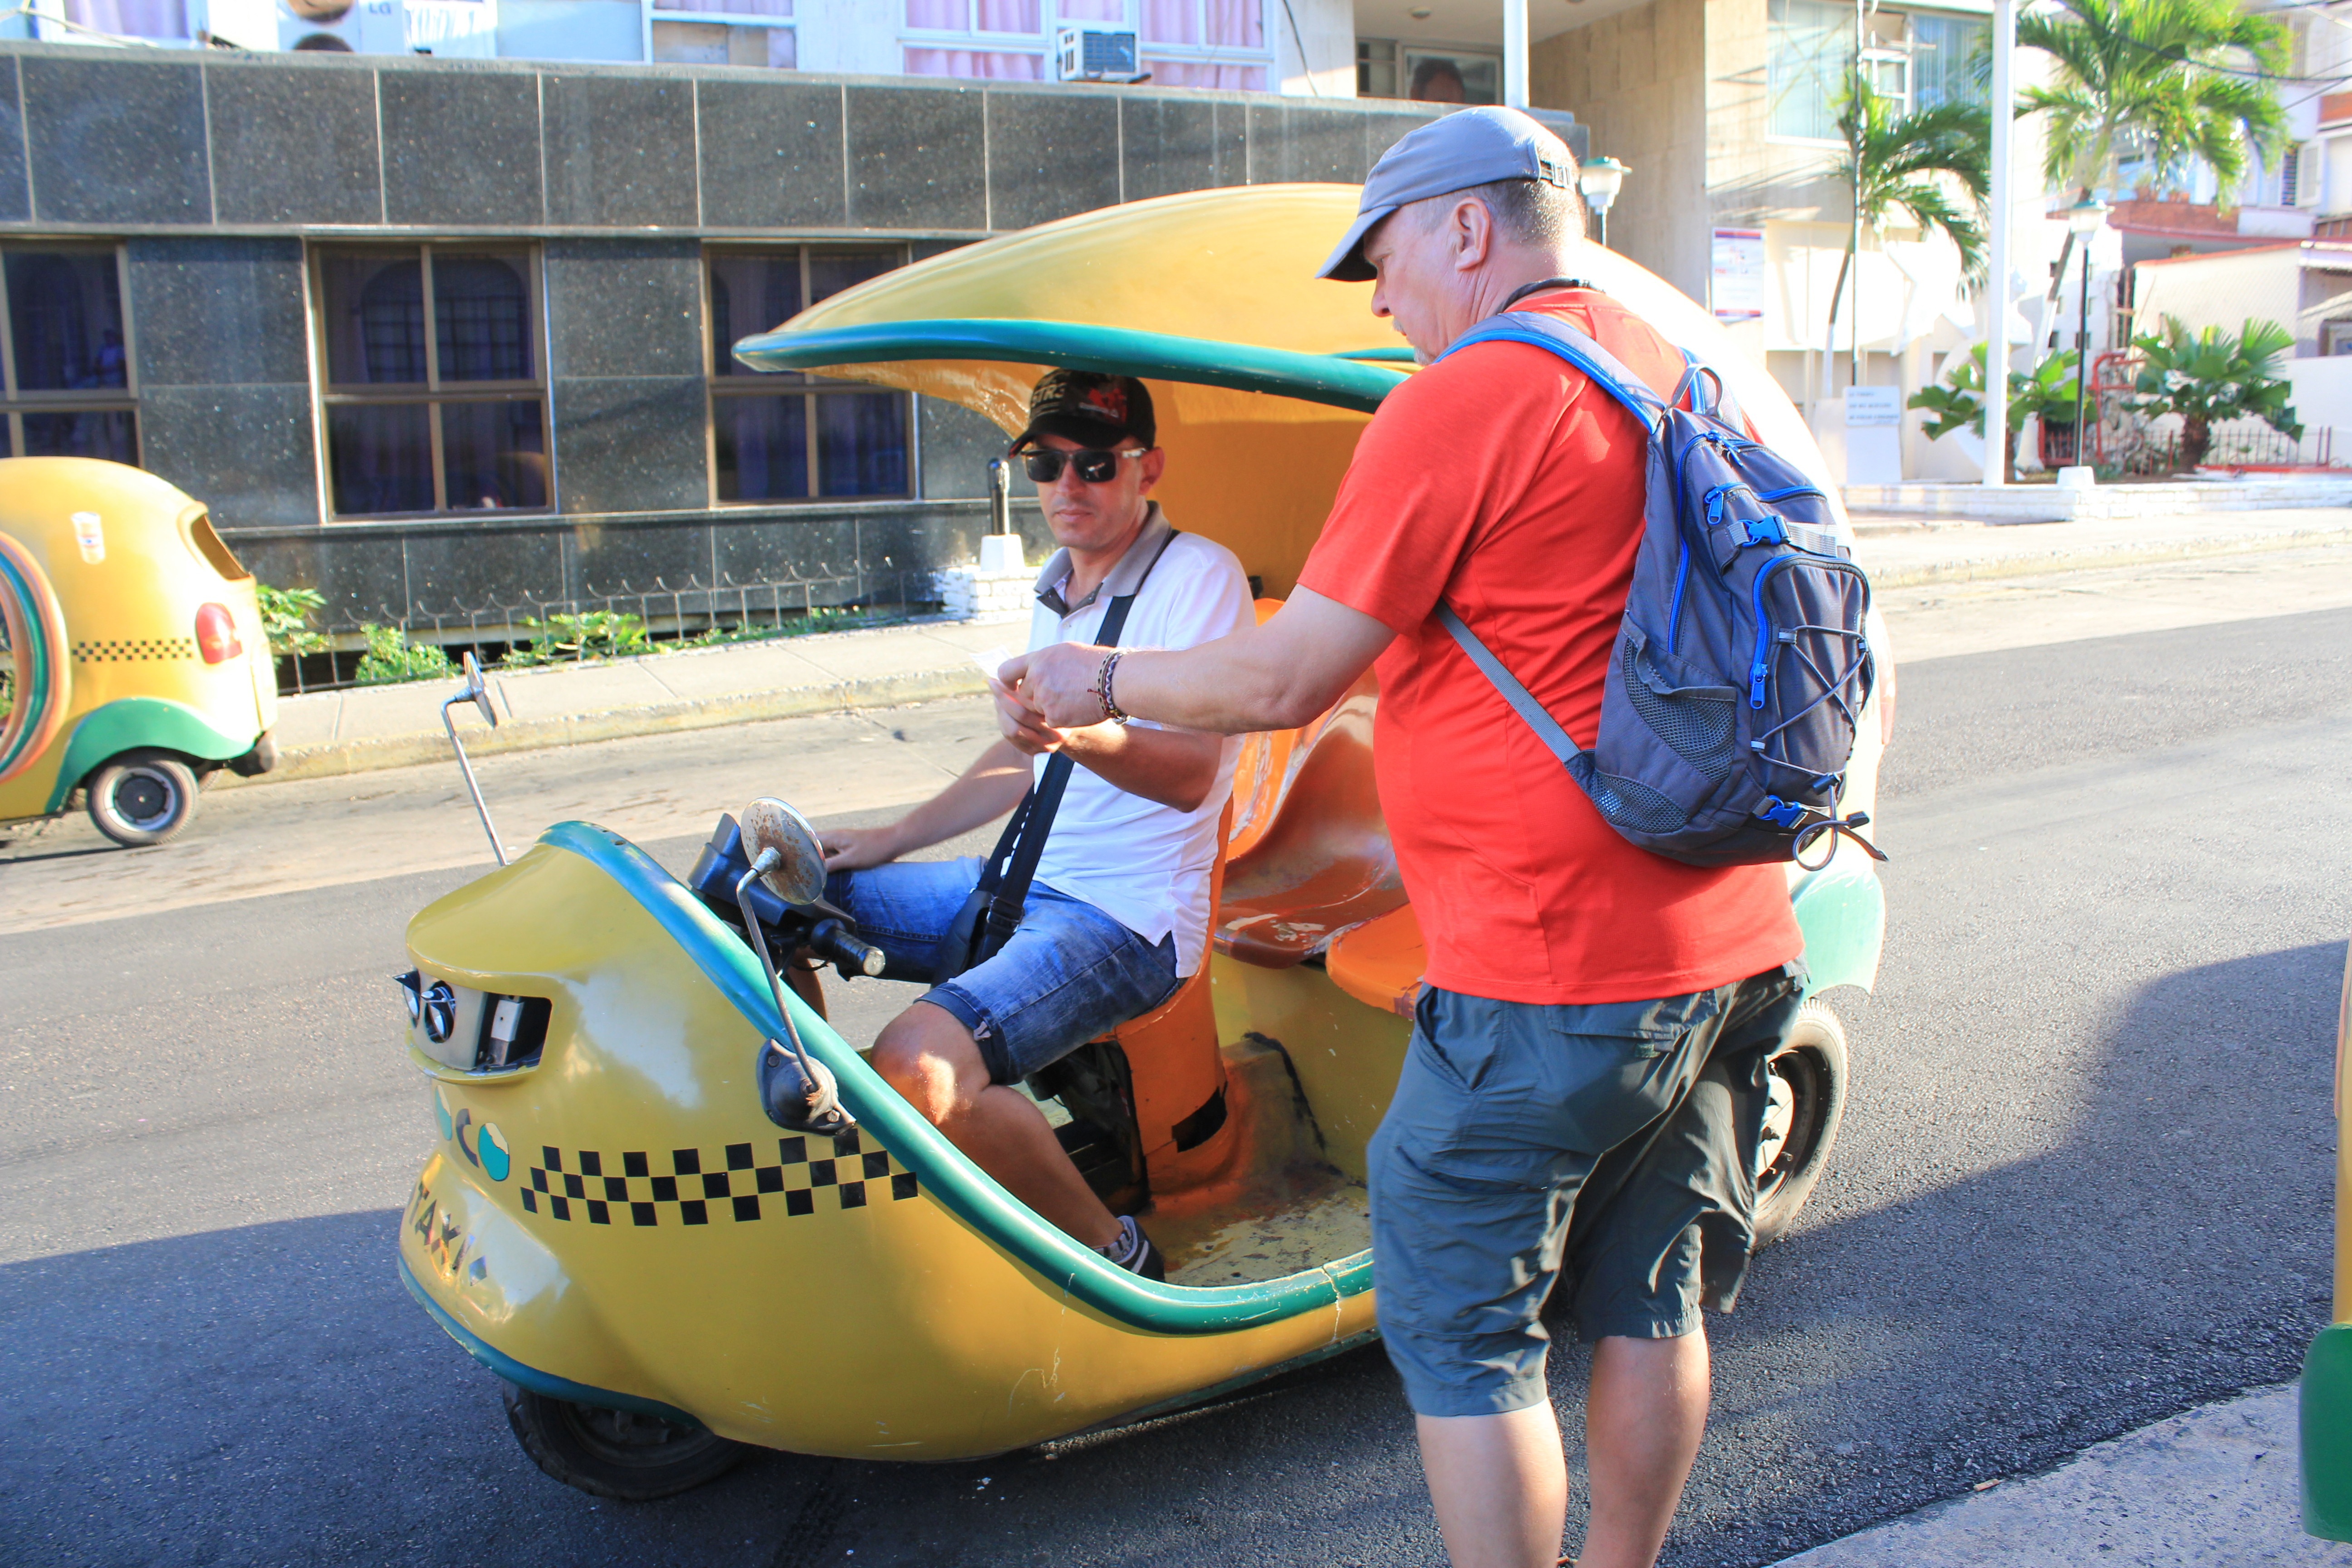 coco-taxi-in-havana So, you want to go to Cuba? Here are some pointers. Cuba